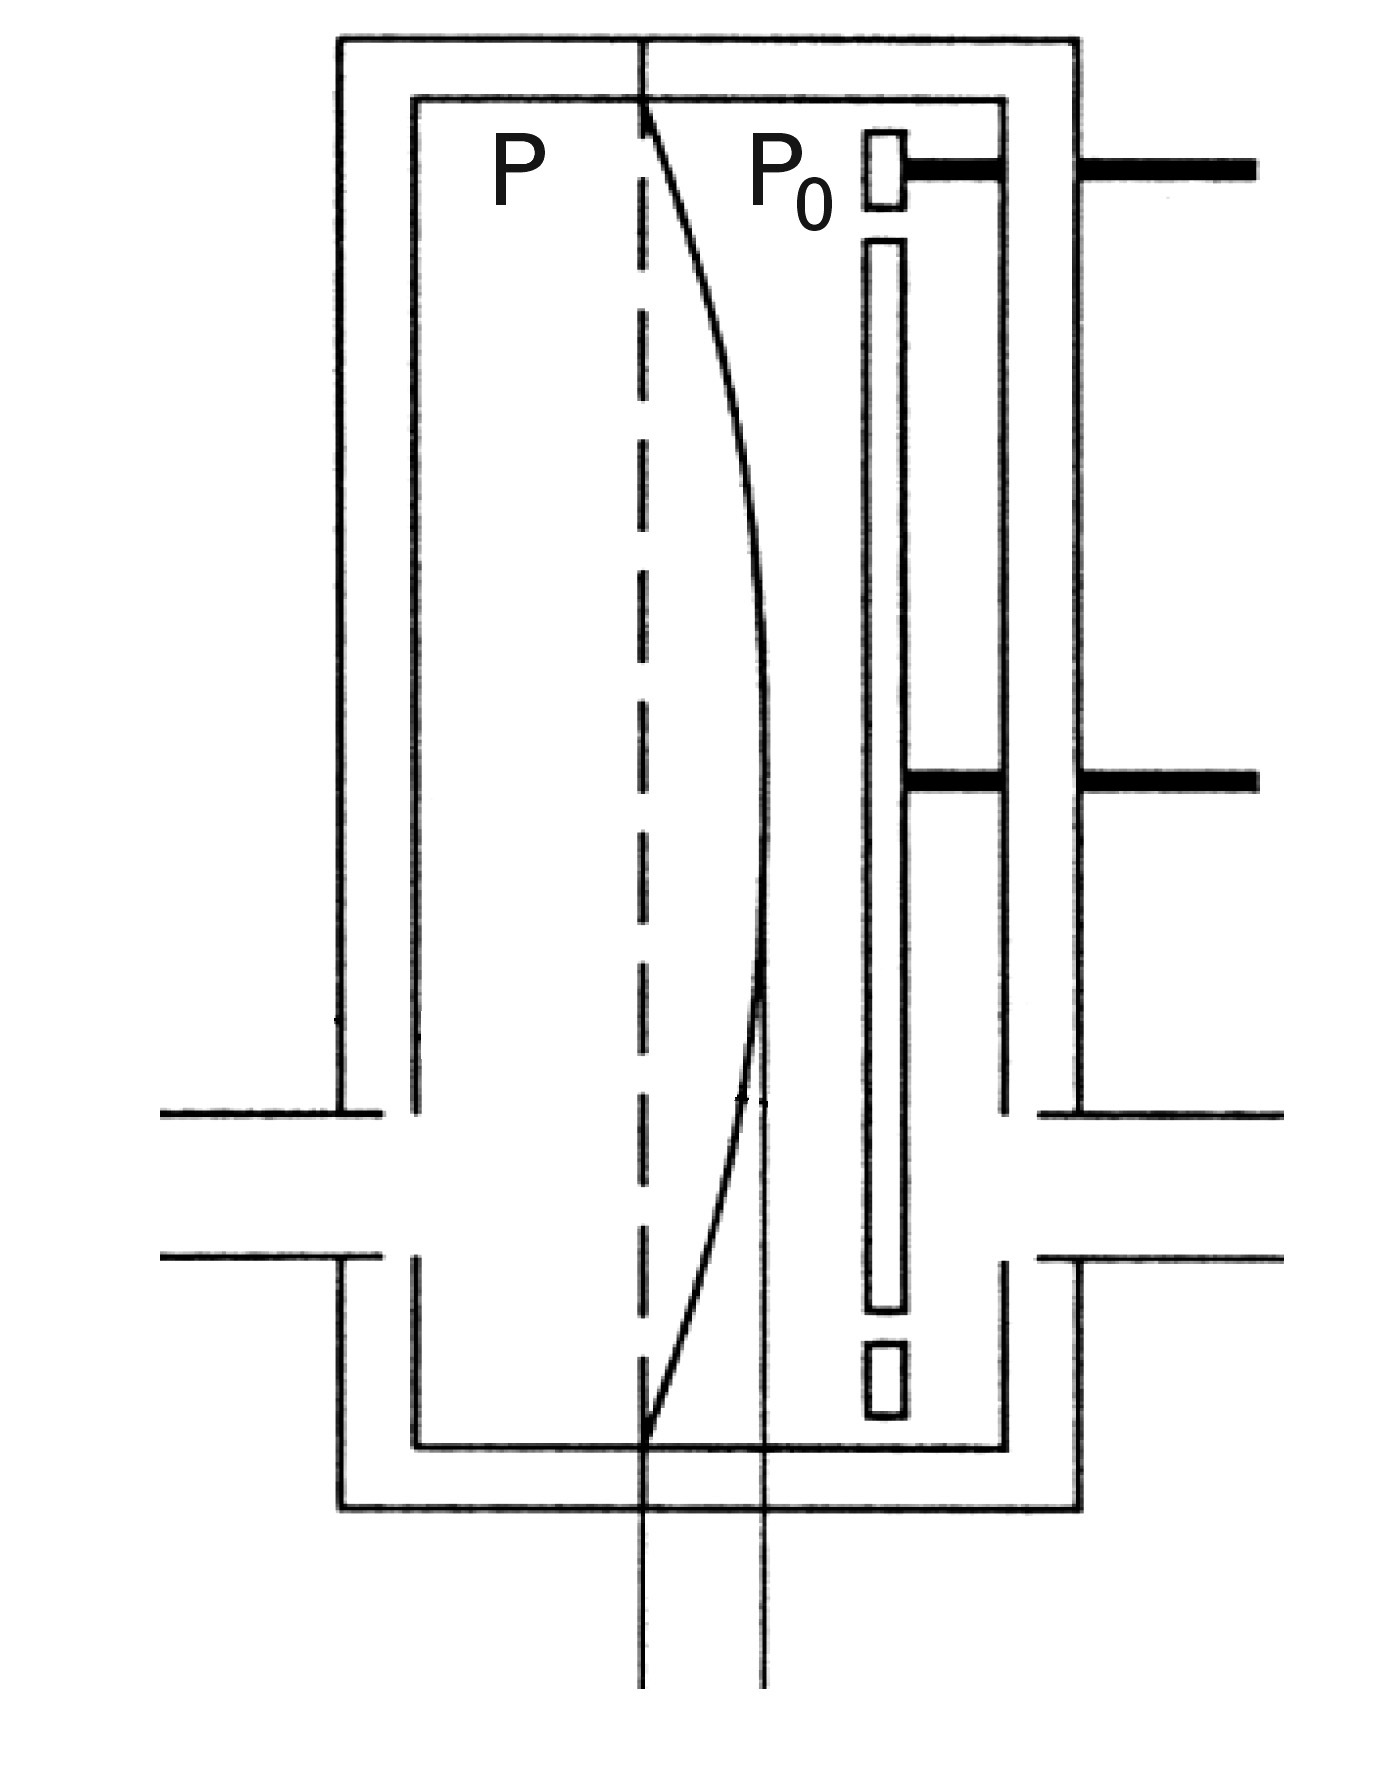 Design of a capacitative diaphragm 			vacuum gauge